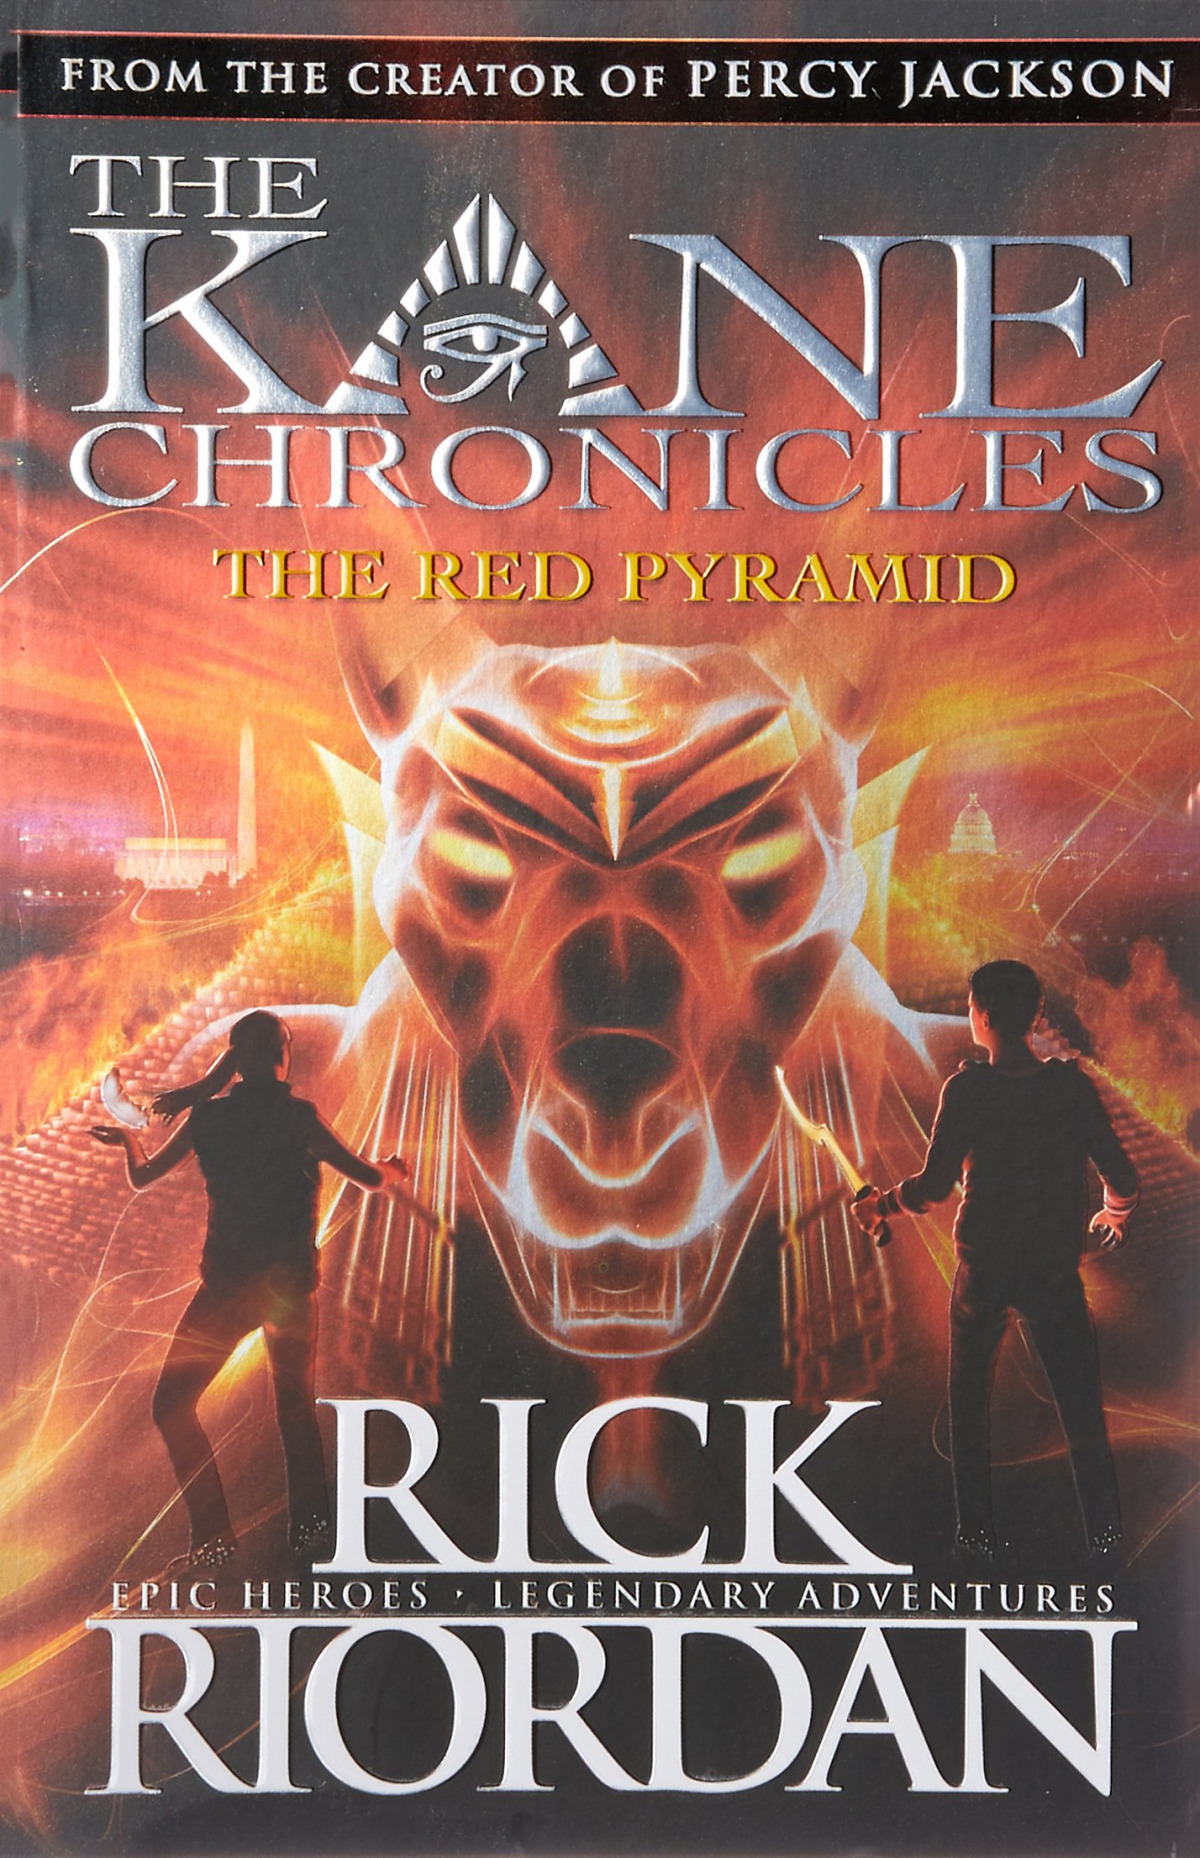 KANE CHRONICLES, THE RED PYRAMID